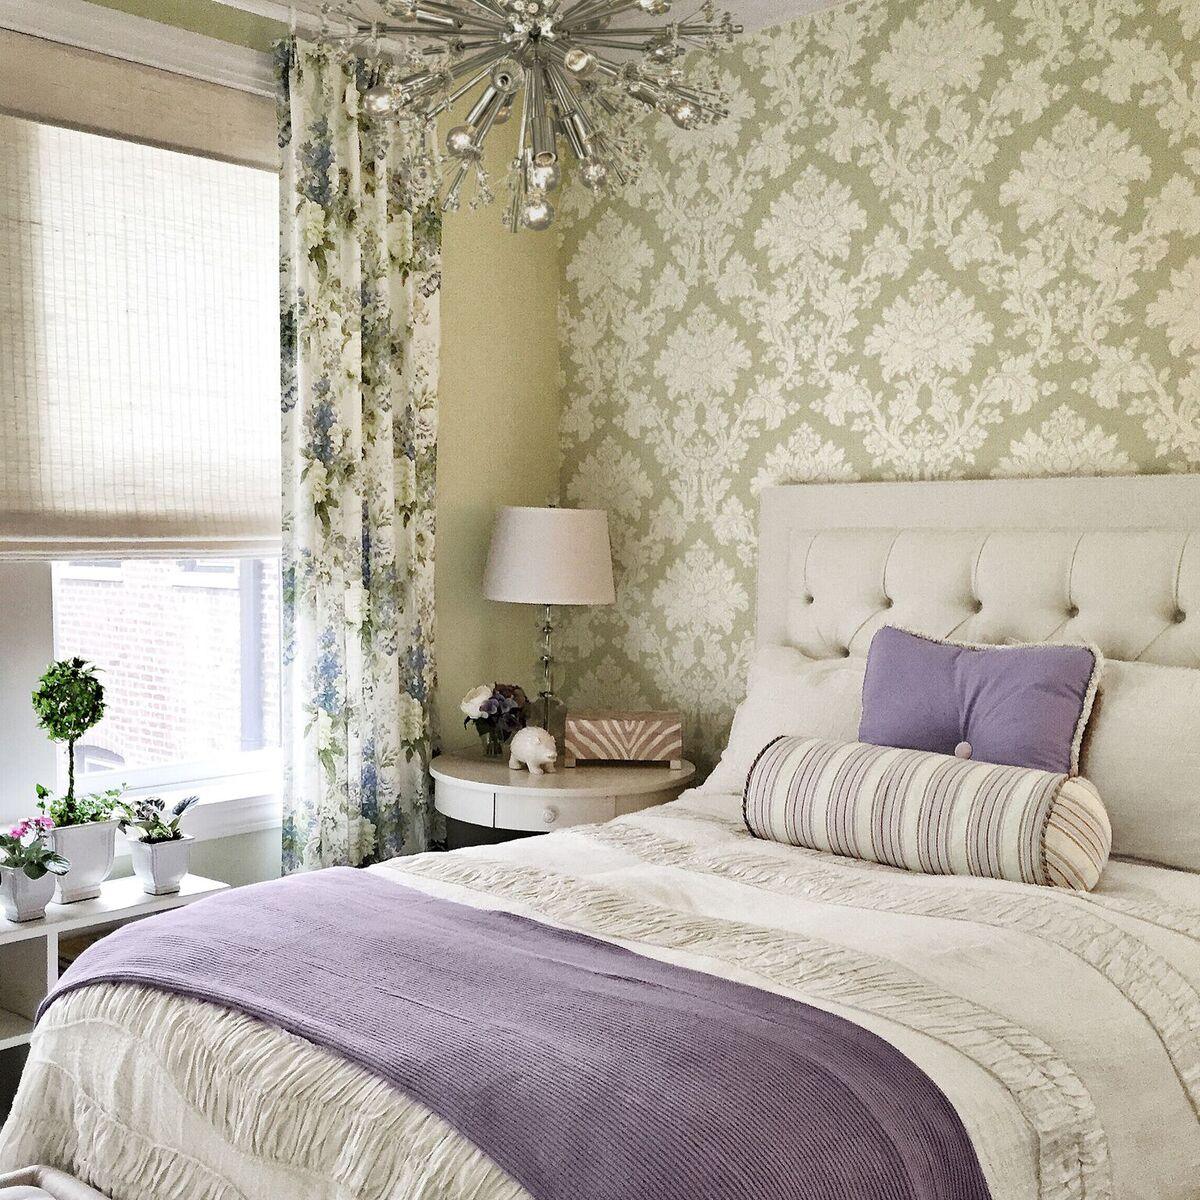 Projects-Princess-in-the-Garden-Girls-Bedroom_preview.jpg